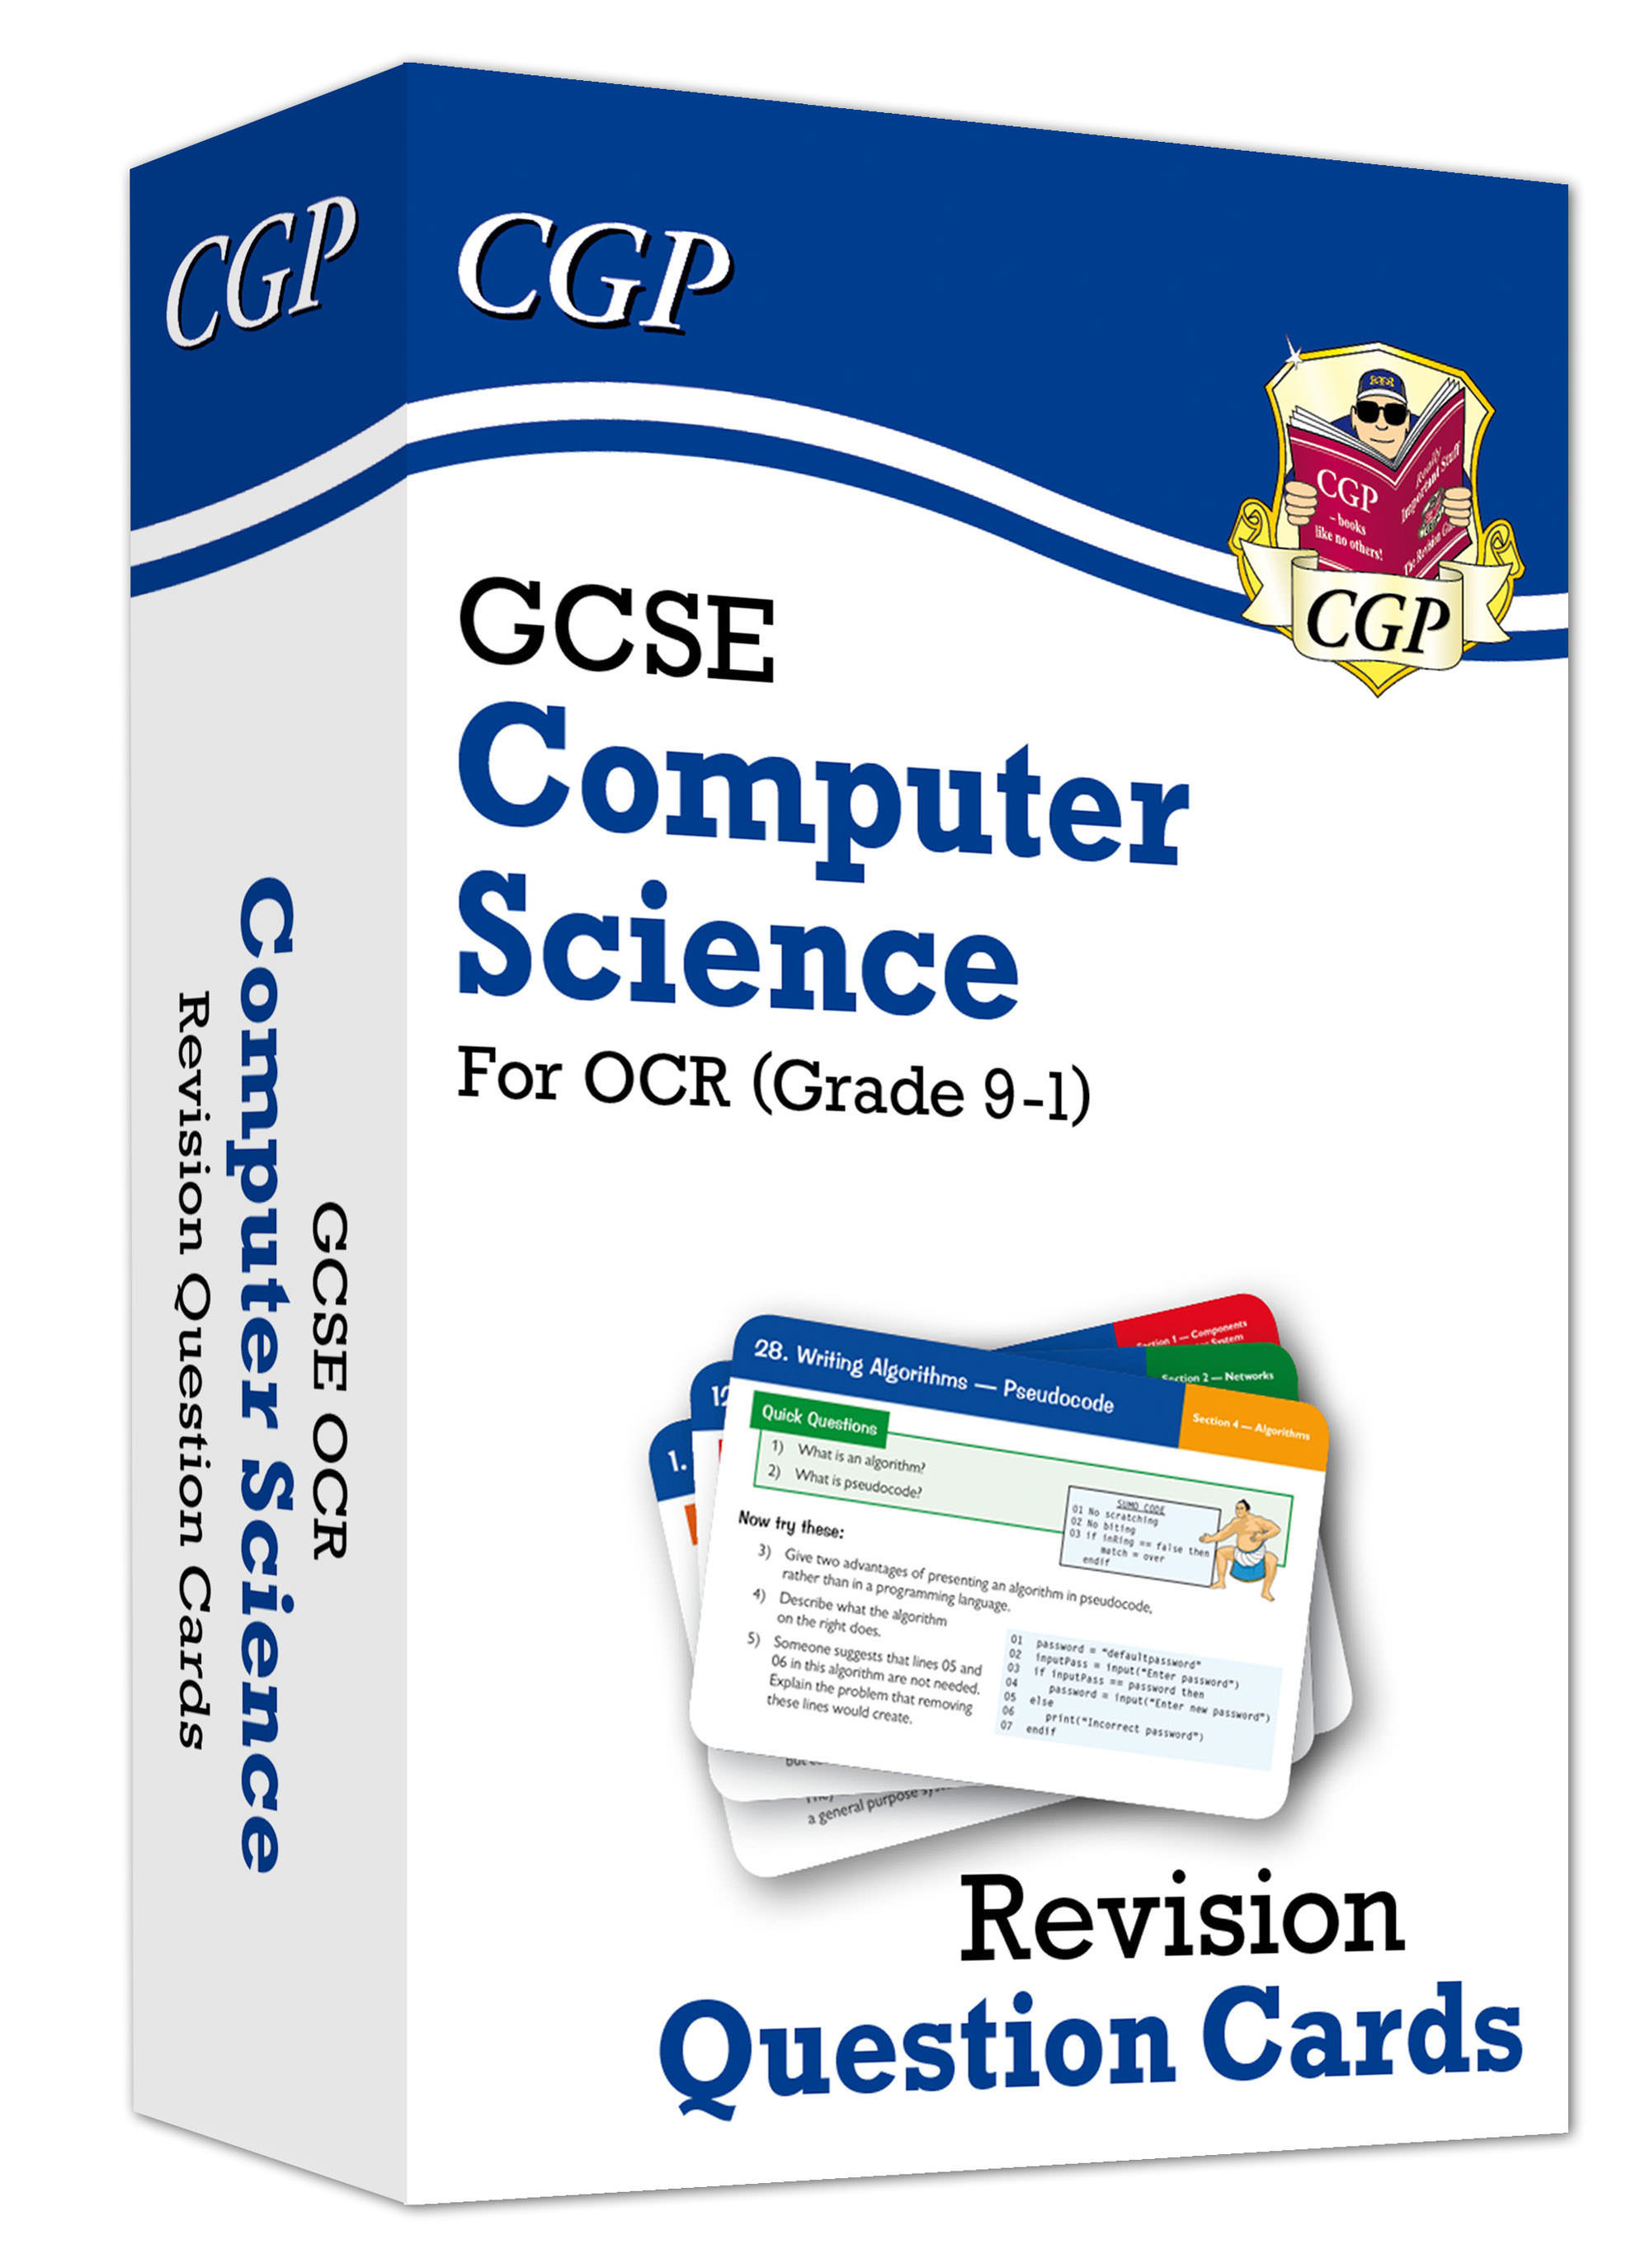 COF41DK - Grade 9-1 GCSE Computer Science OCR Revision Question Cards - for exams in 2021